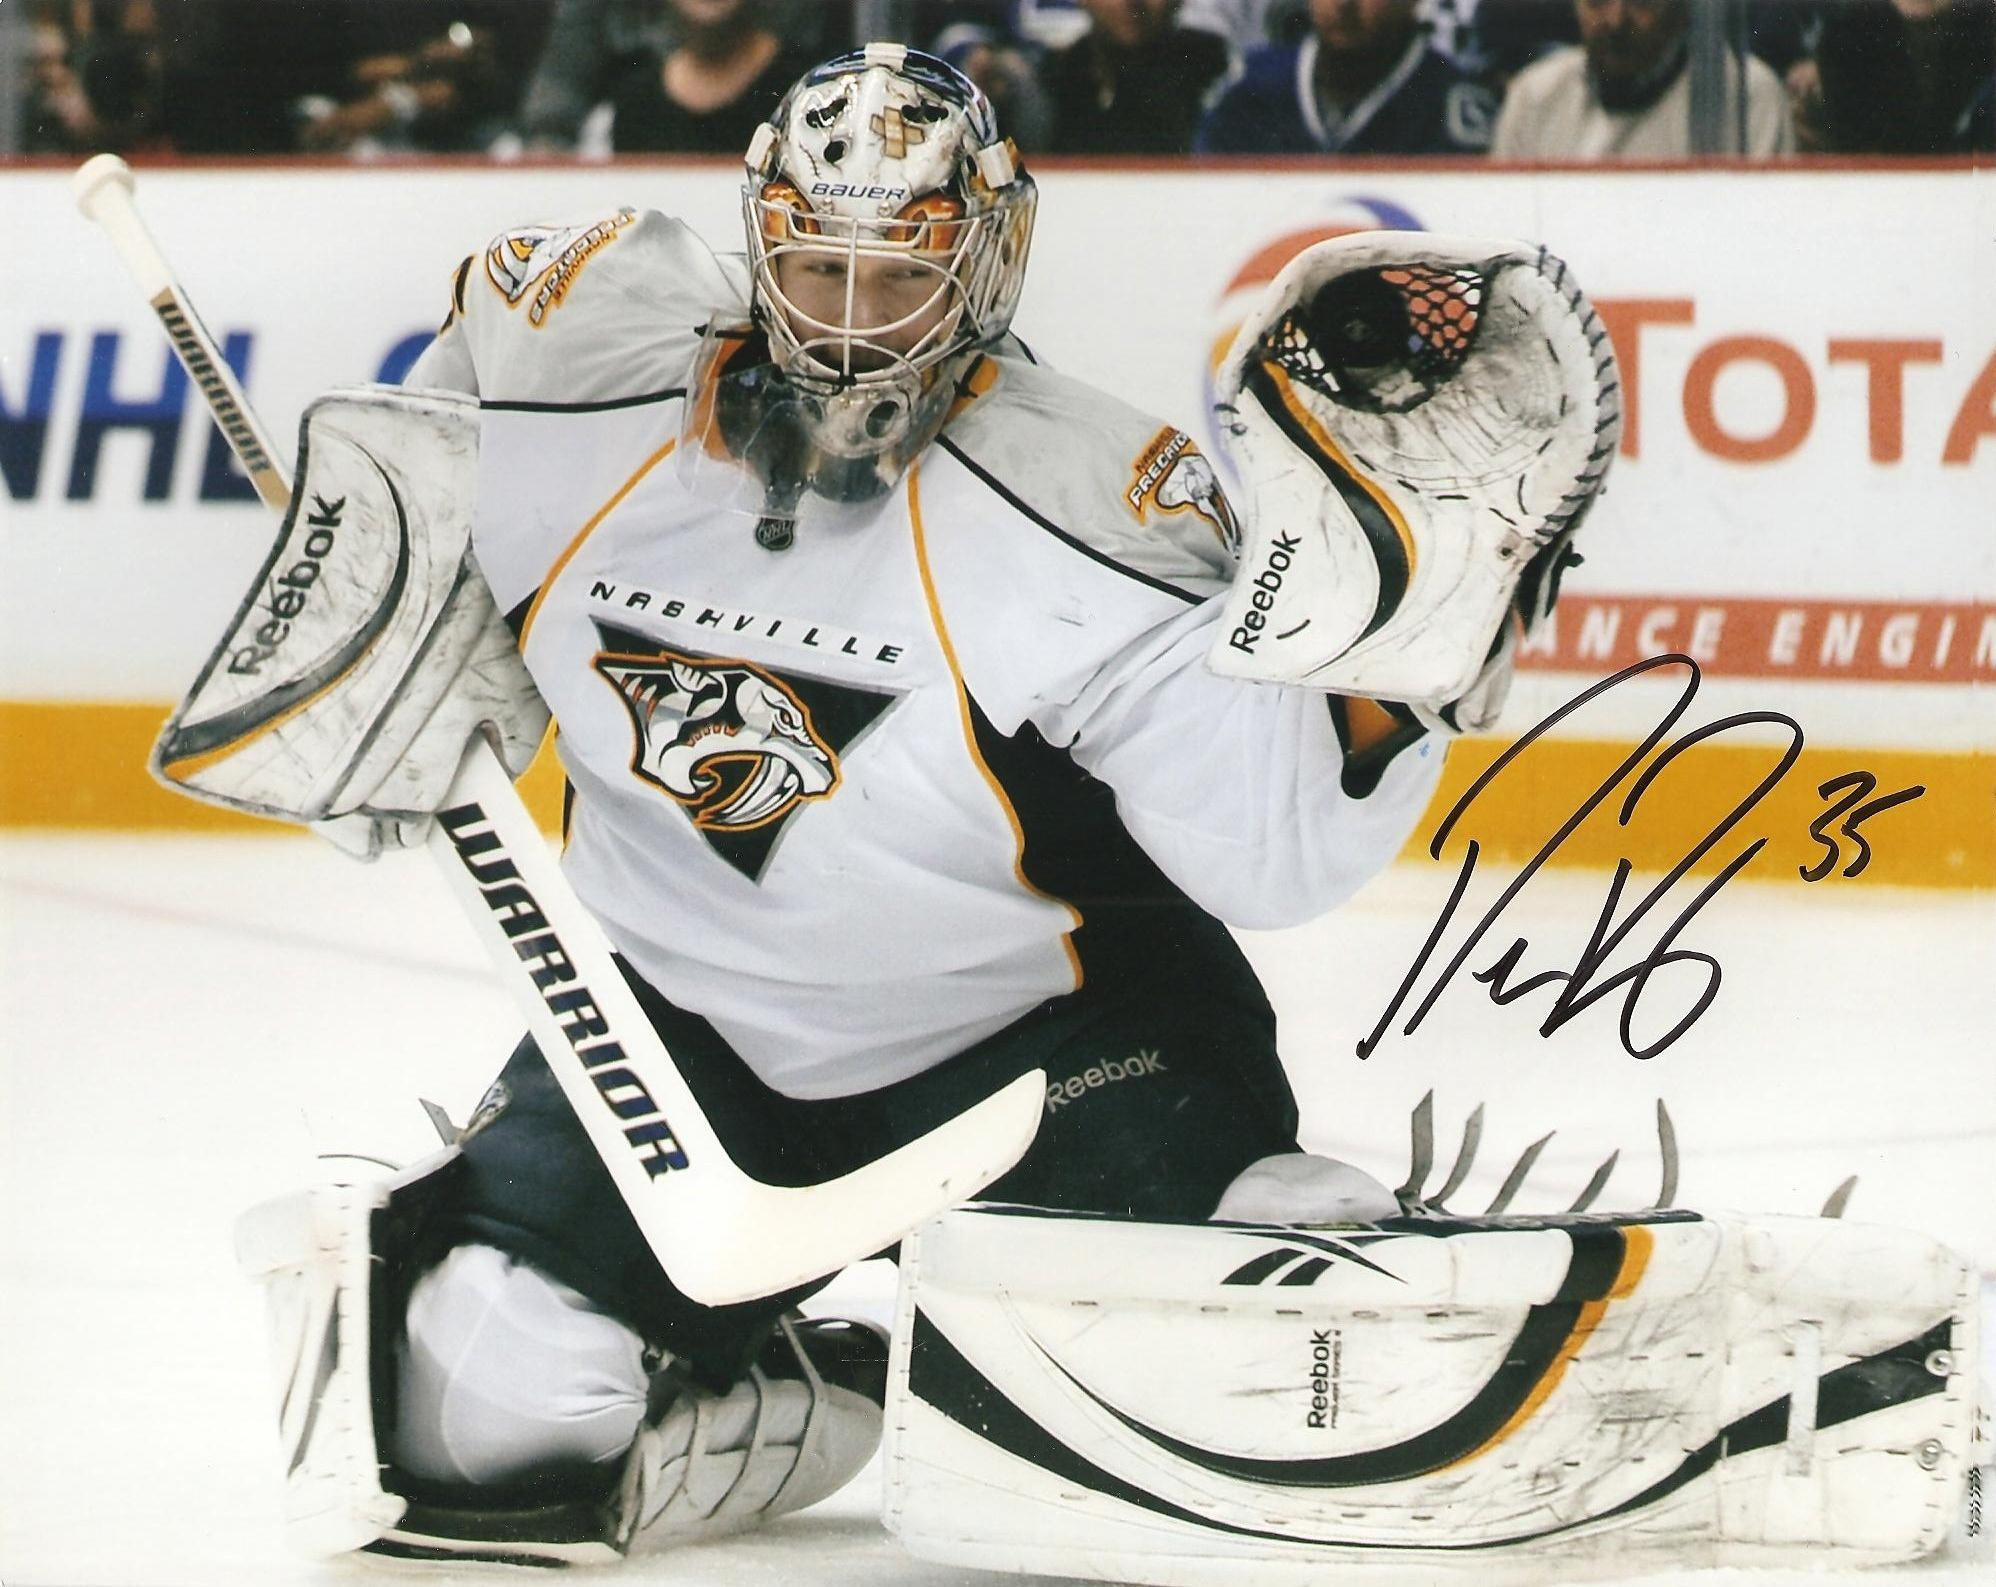 Hockey player Nashville Pekka Rinne wallpapers and image